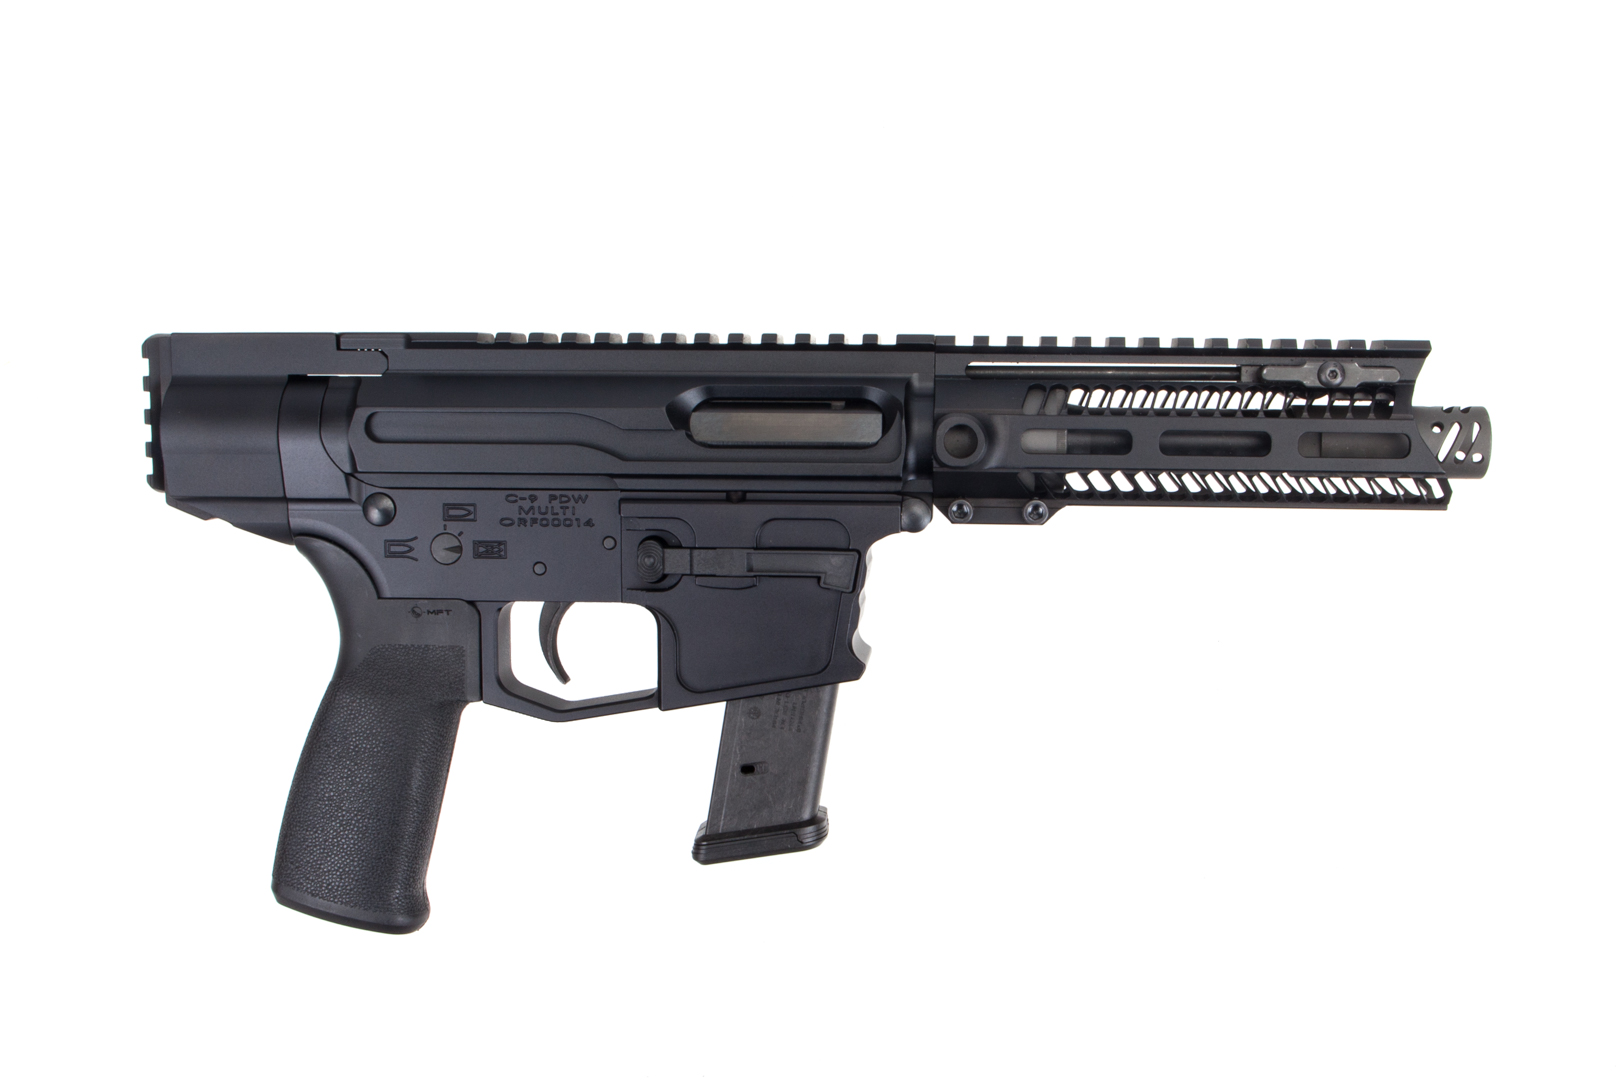 New Frontier Armory C-5 PDW 9MM Pistol - 5